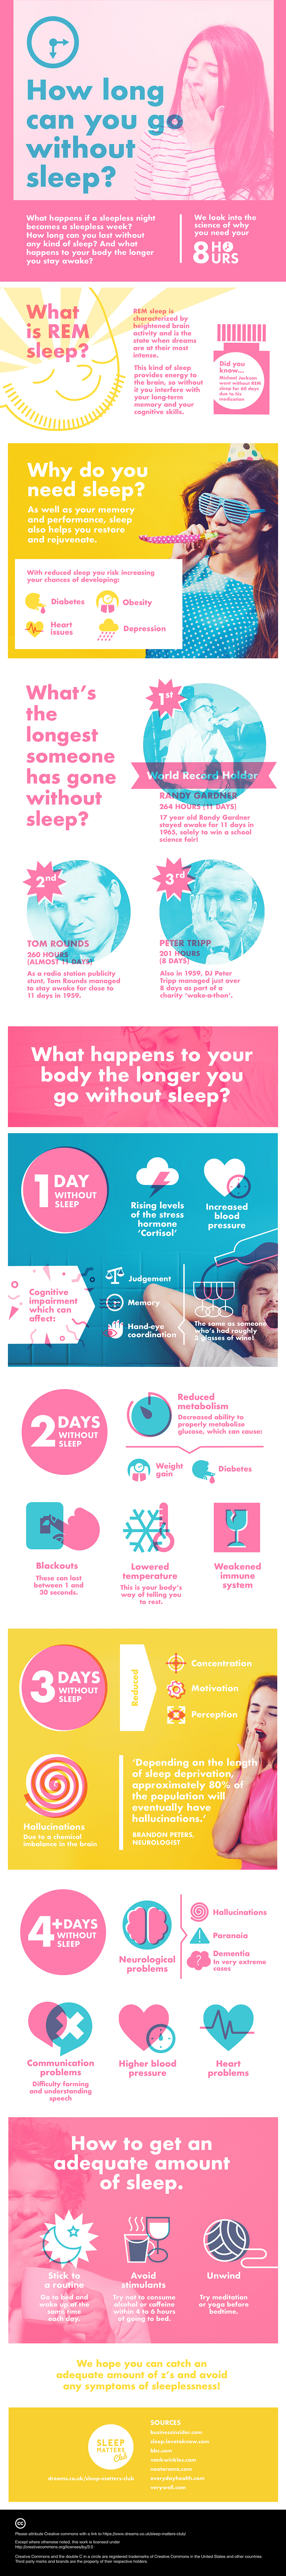 The Importance of Enough Sleep - Infographic